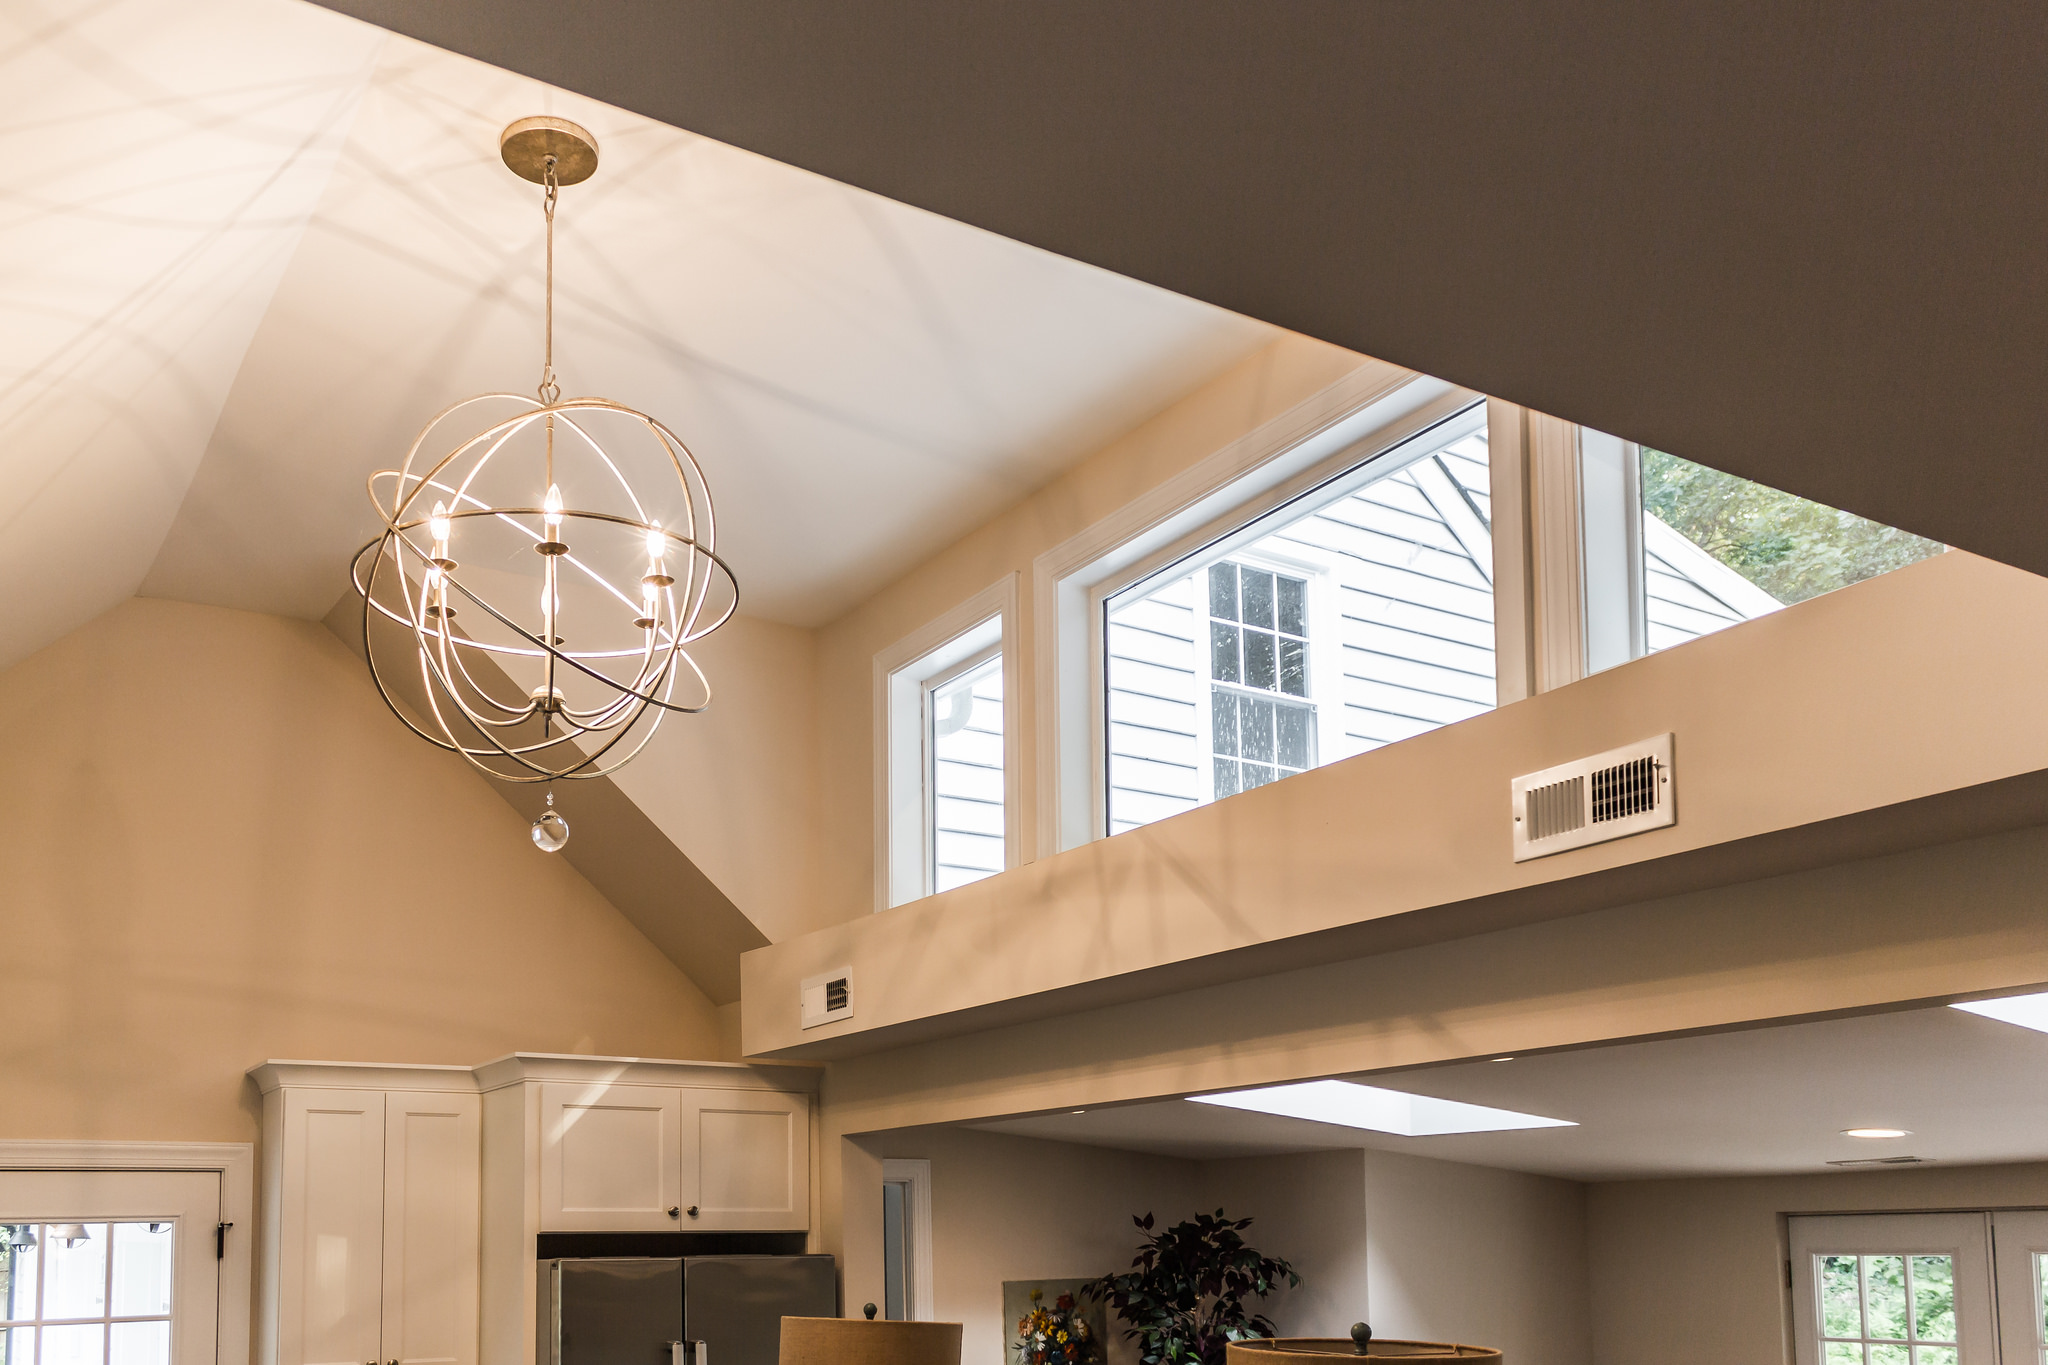 5 Orb Chandelier In Open Kitchen And Dining With High Ceilings Cobblestone DG On Remodelaholic